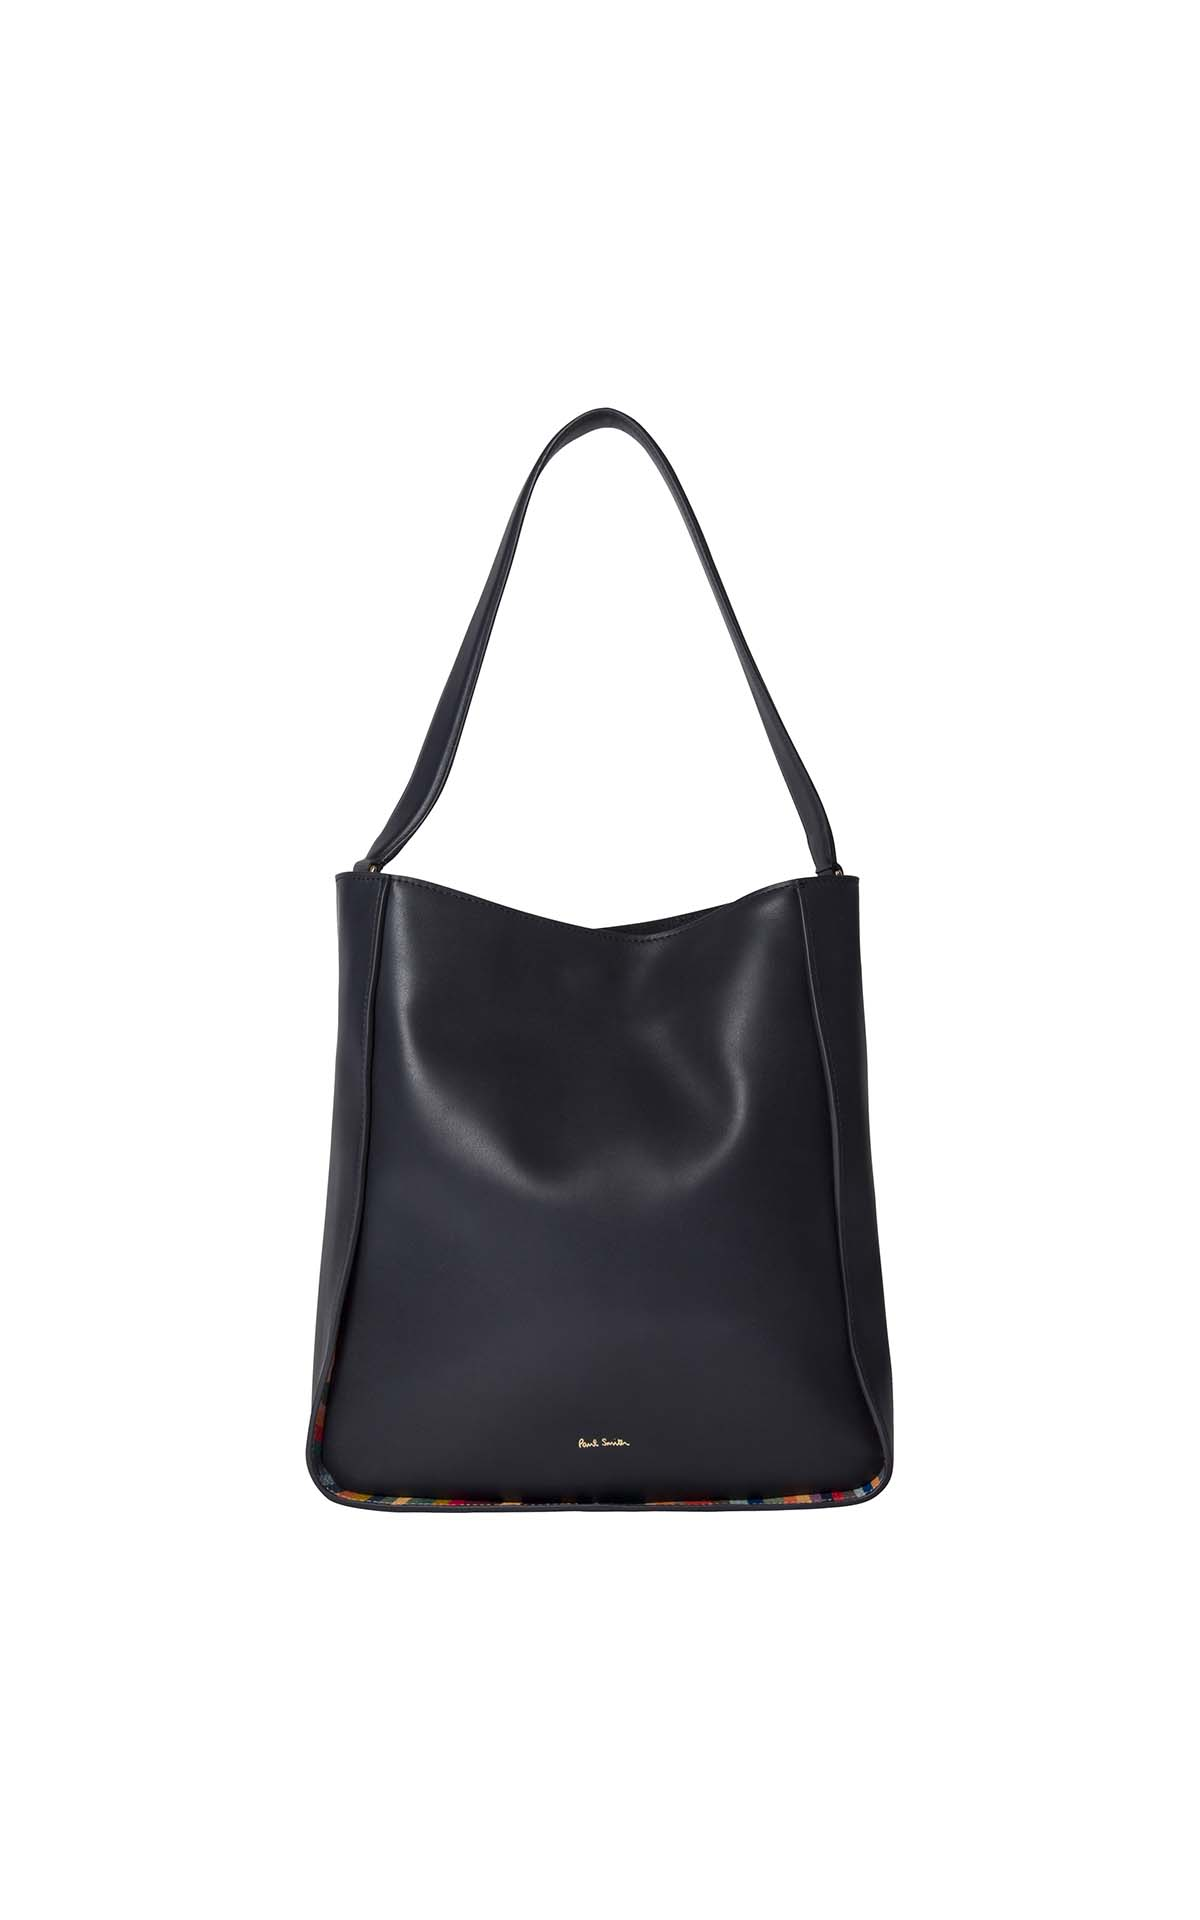 Paul Smith Women's Navy Swirl Trim Bag at The Bicester Village Shopping Collection